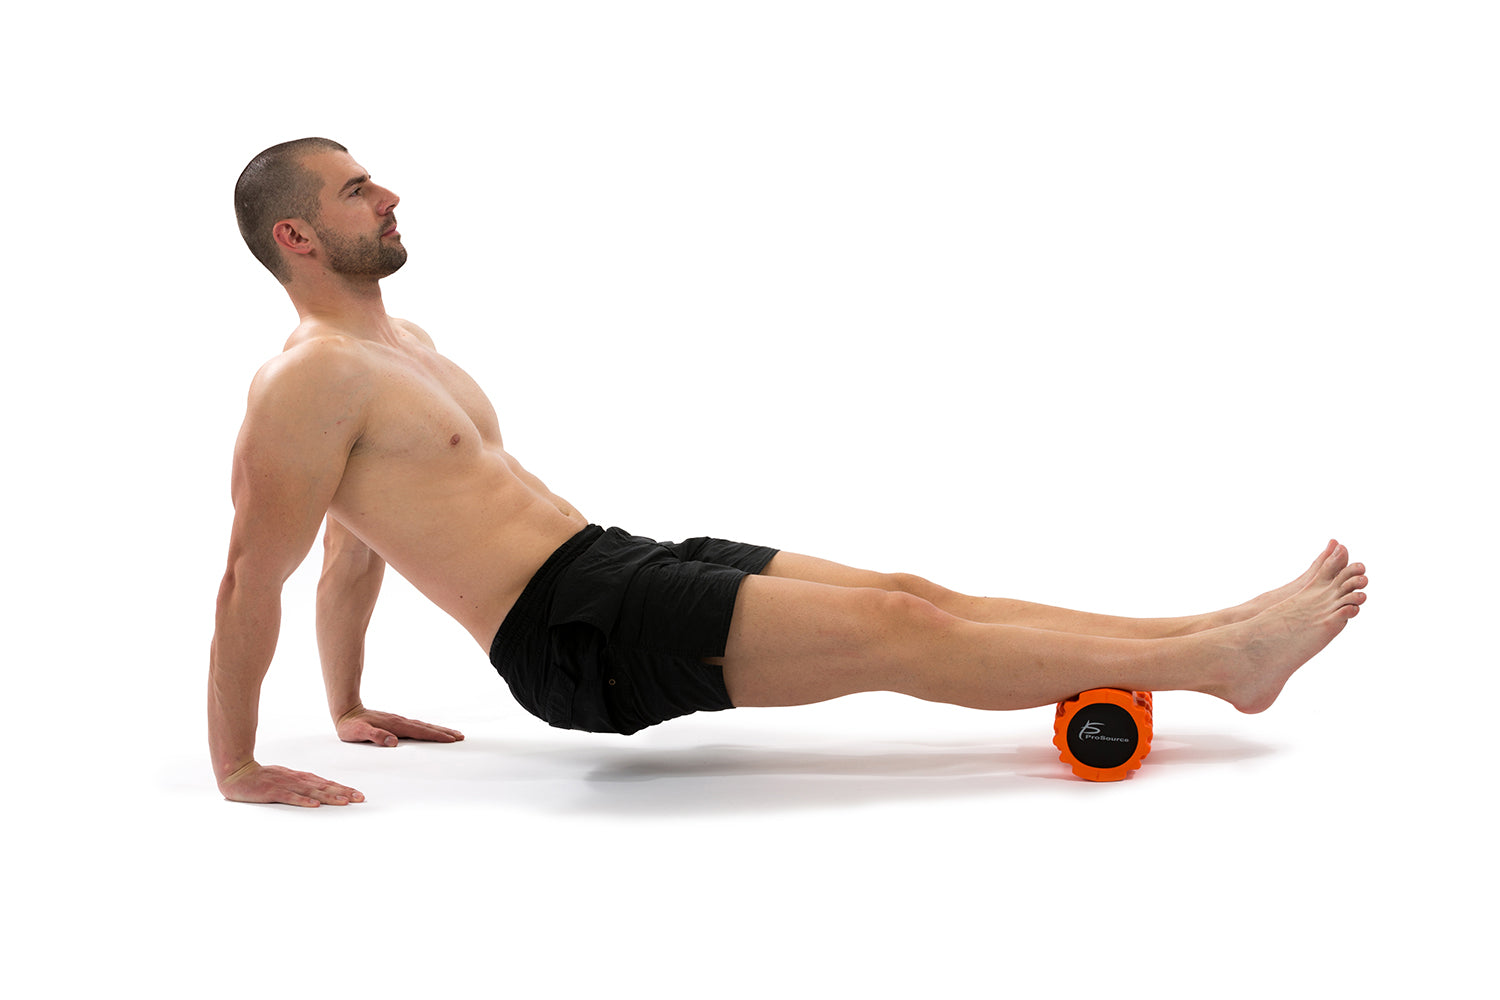 Man foam rolling on a prosource sports medicine roller